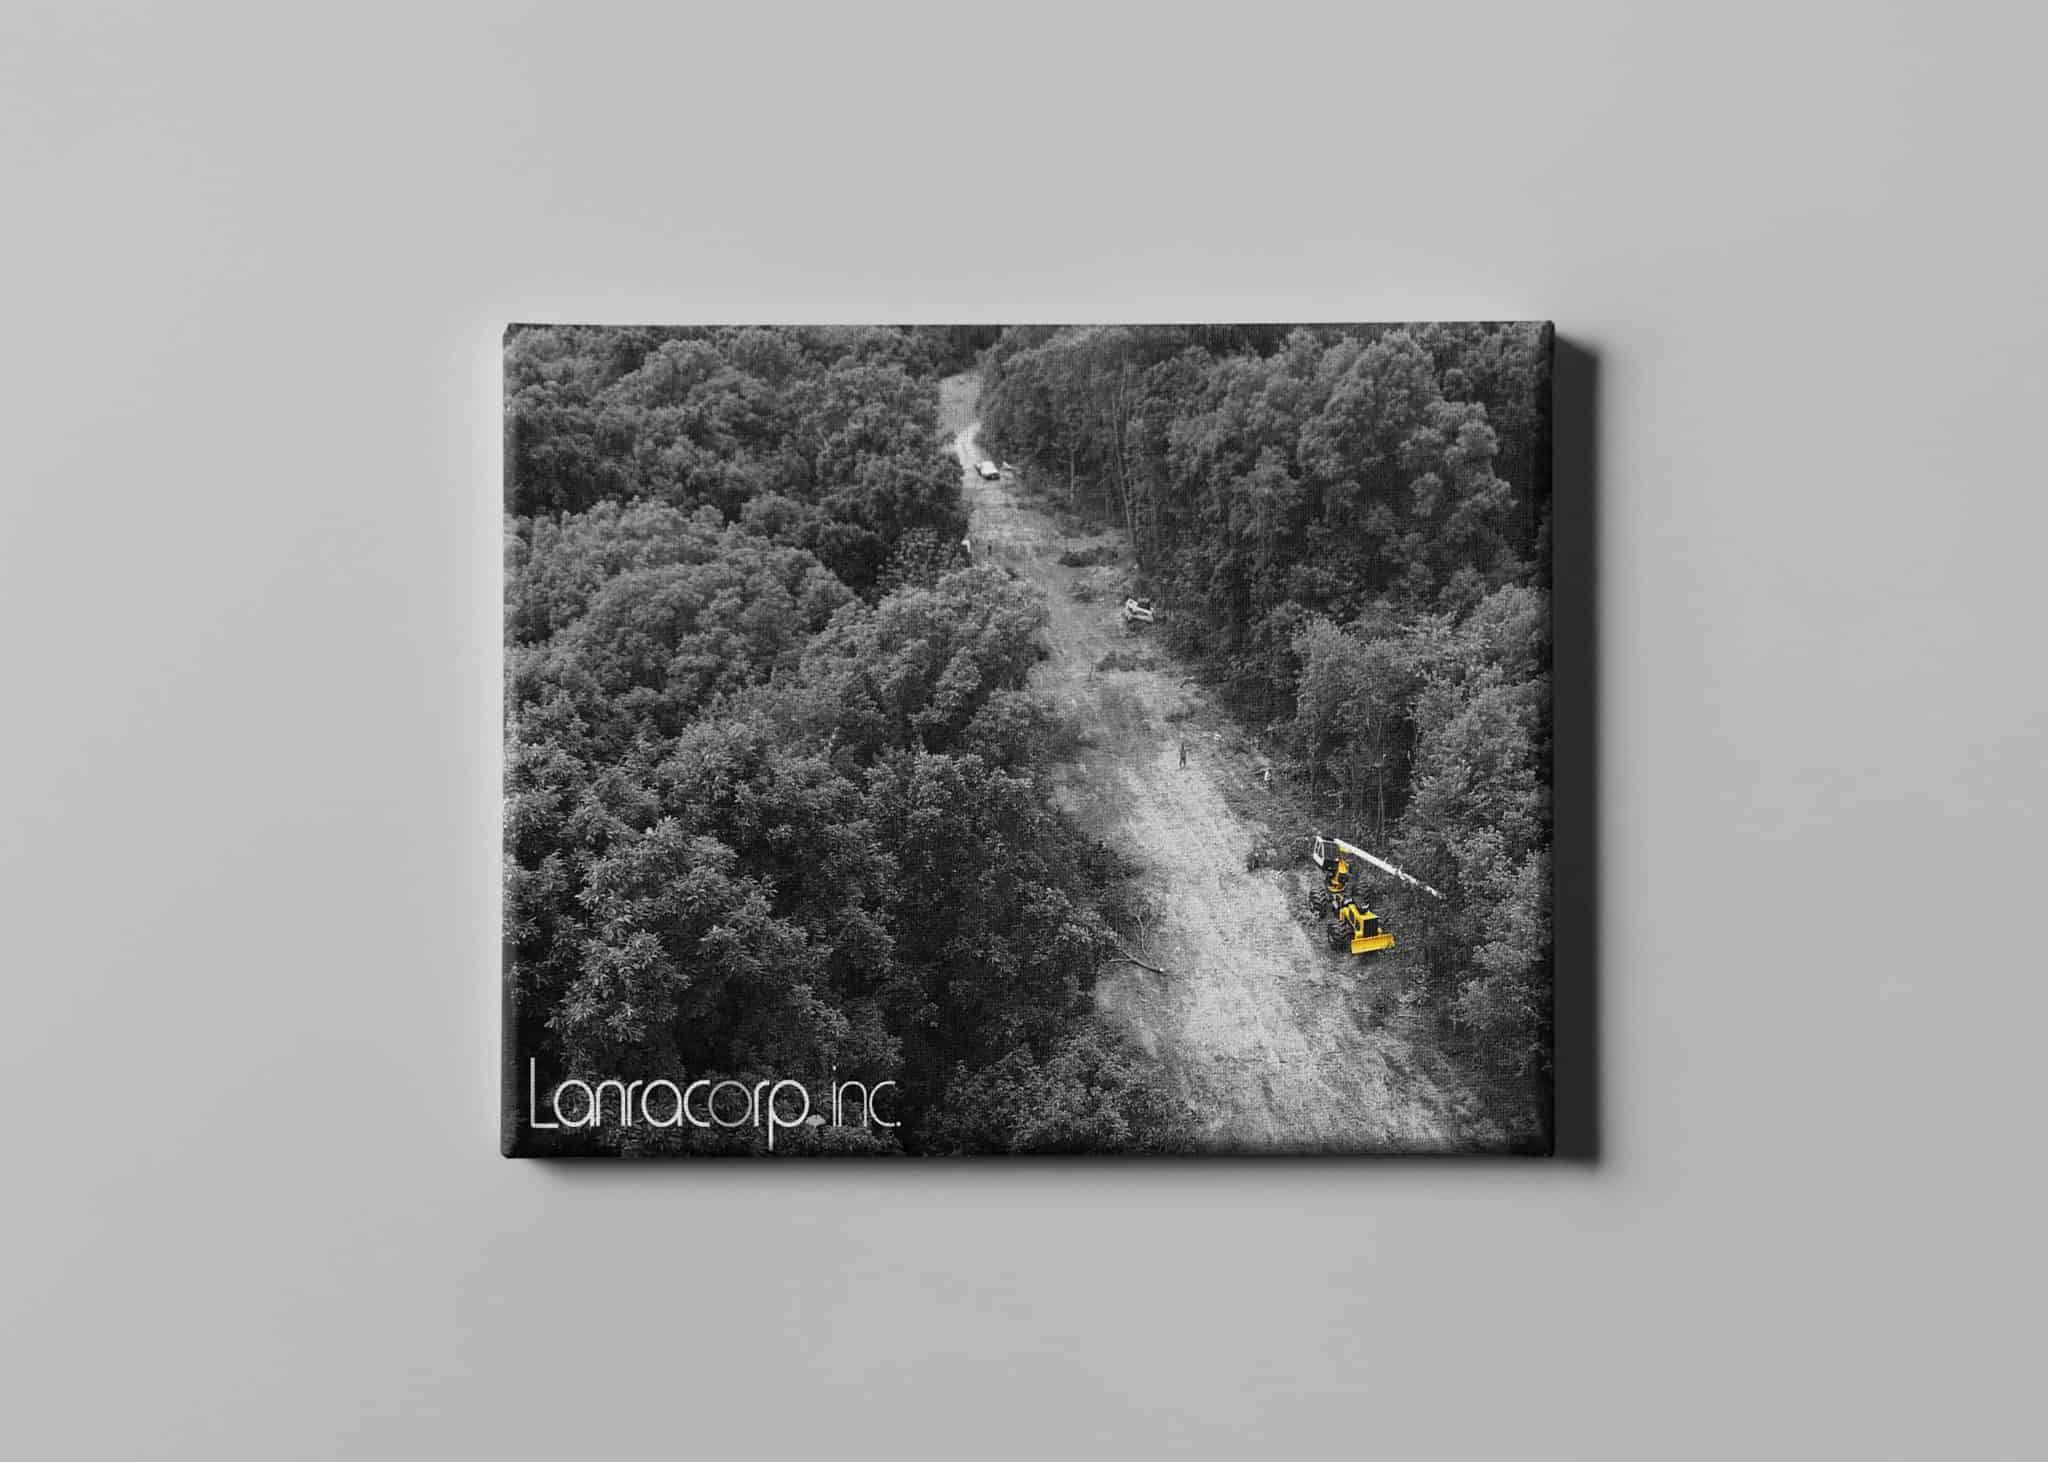 Lanracorp Canvas depicting black and white aerial photo of trees and a yellow tractor